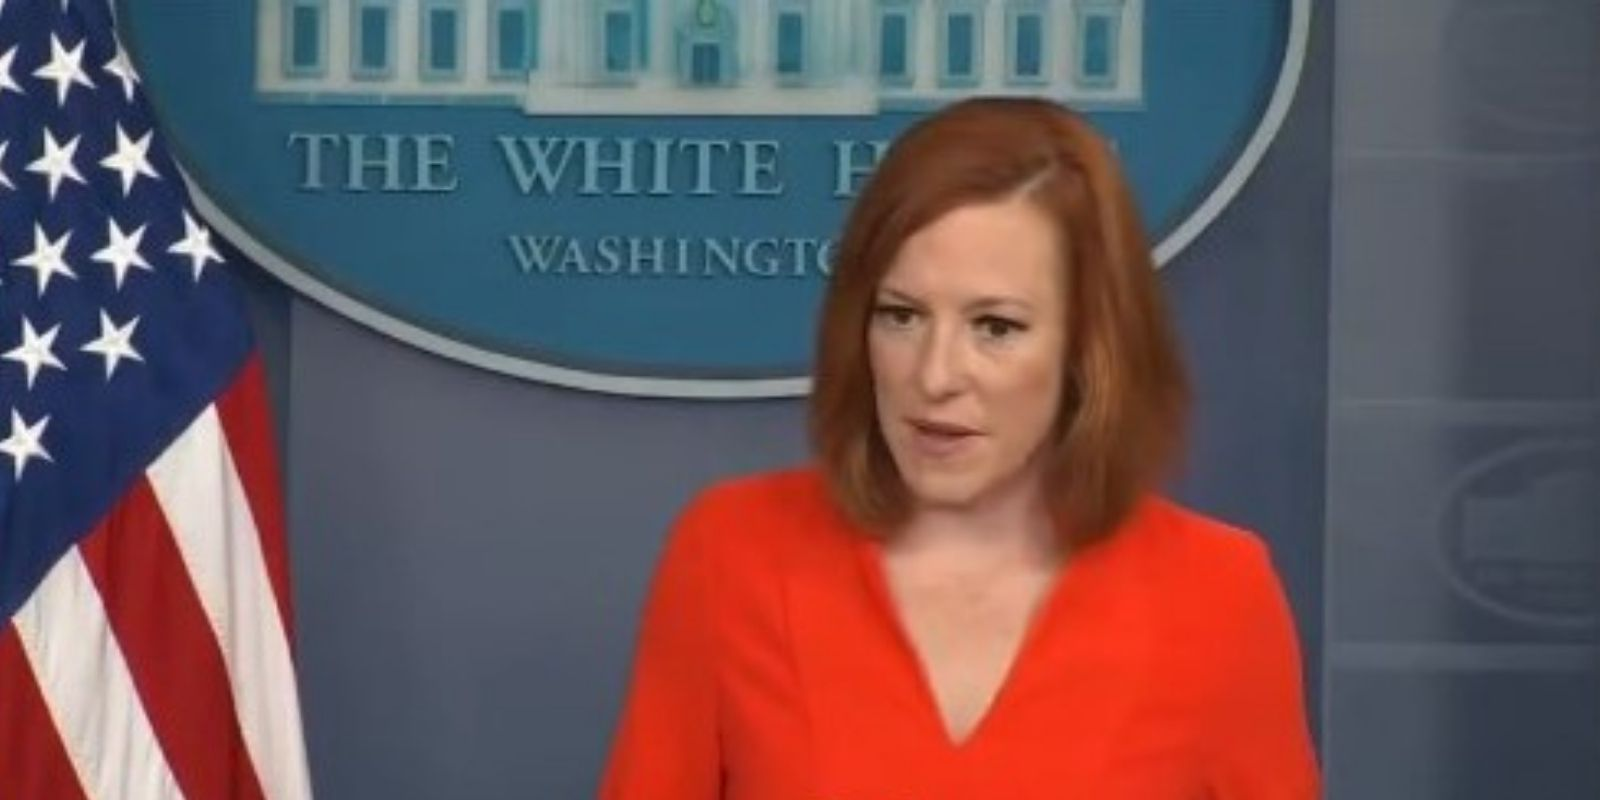 WATCH: Psaki says Biden admin has 'highest ethical standards of any administration in history'